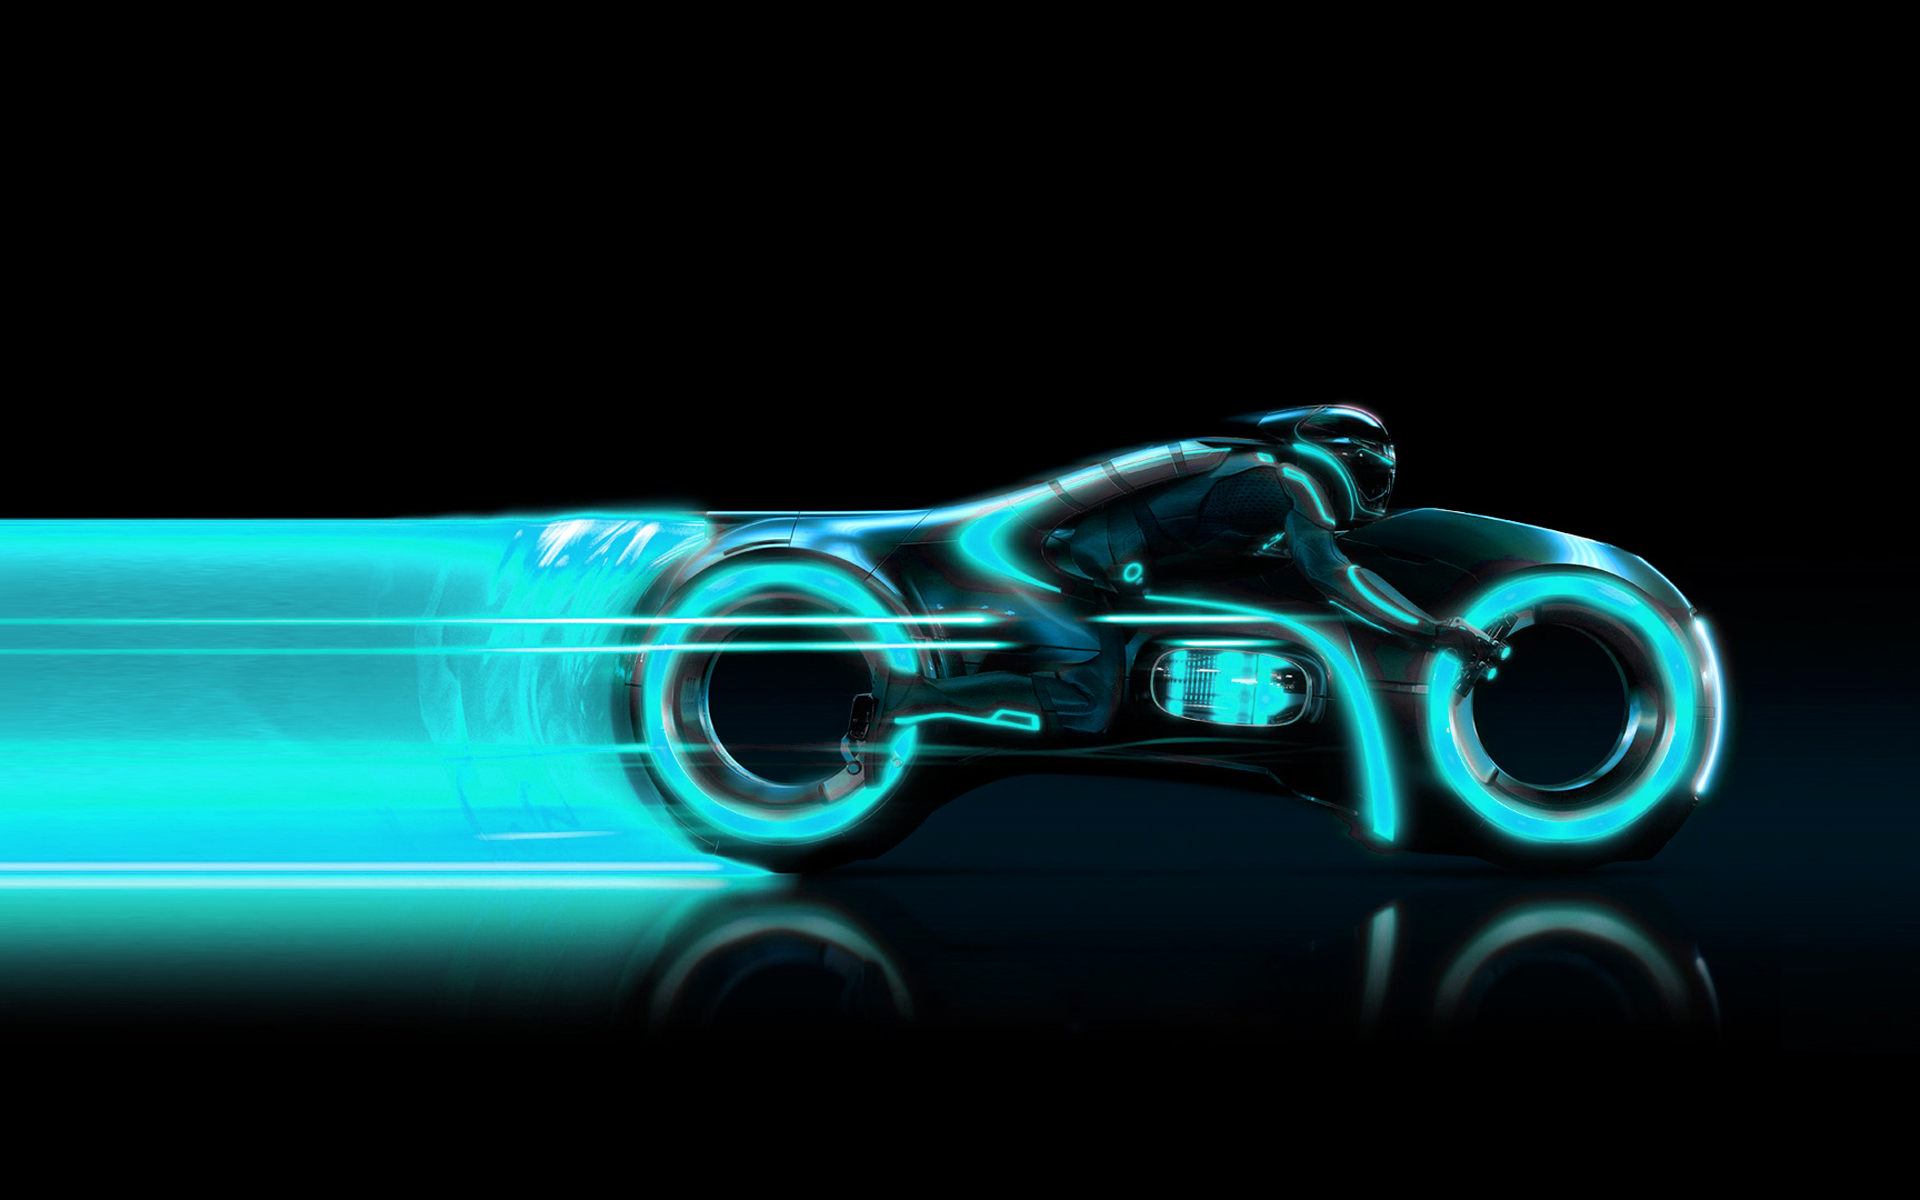 Tron Light Cycle Tronlegacy Wallpaper 3 1920x1200